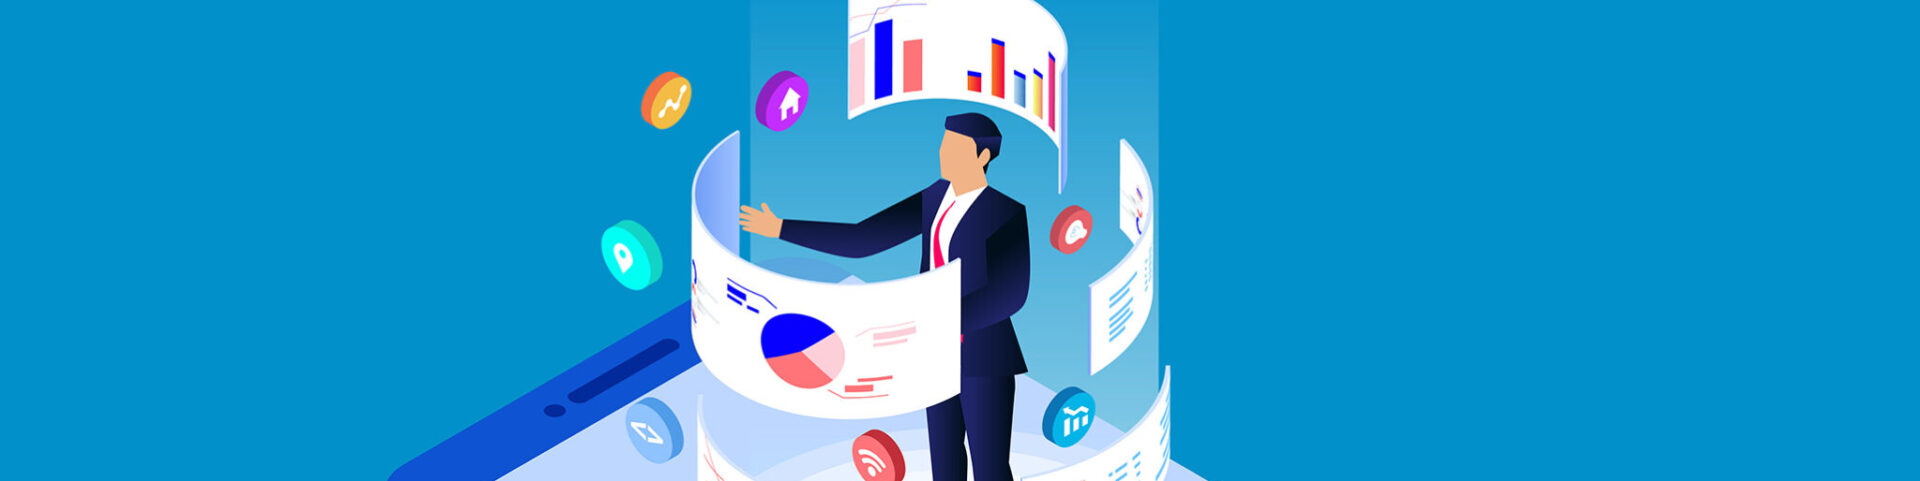 Illustration of a man standing on a smartphone with digital marketing panels swirling around him